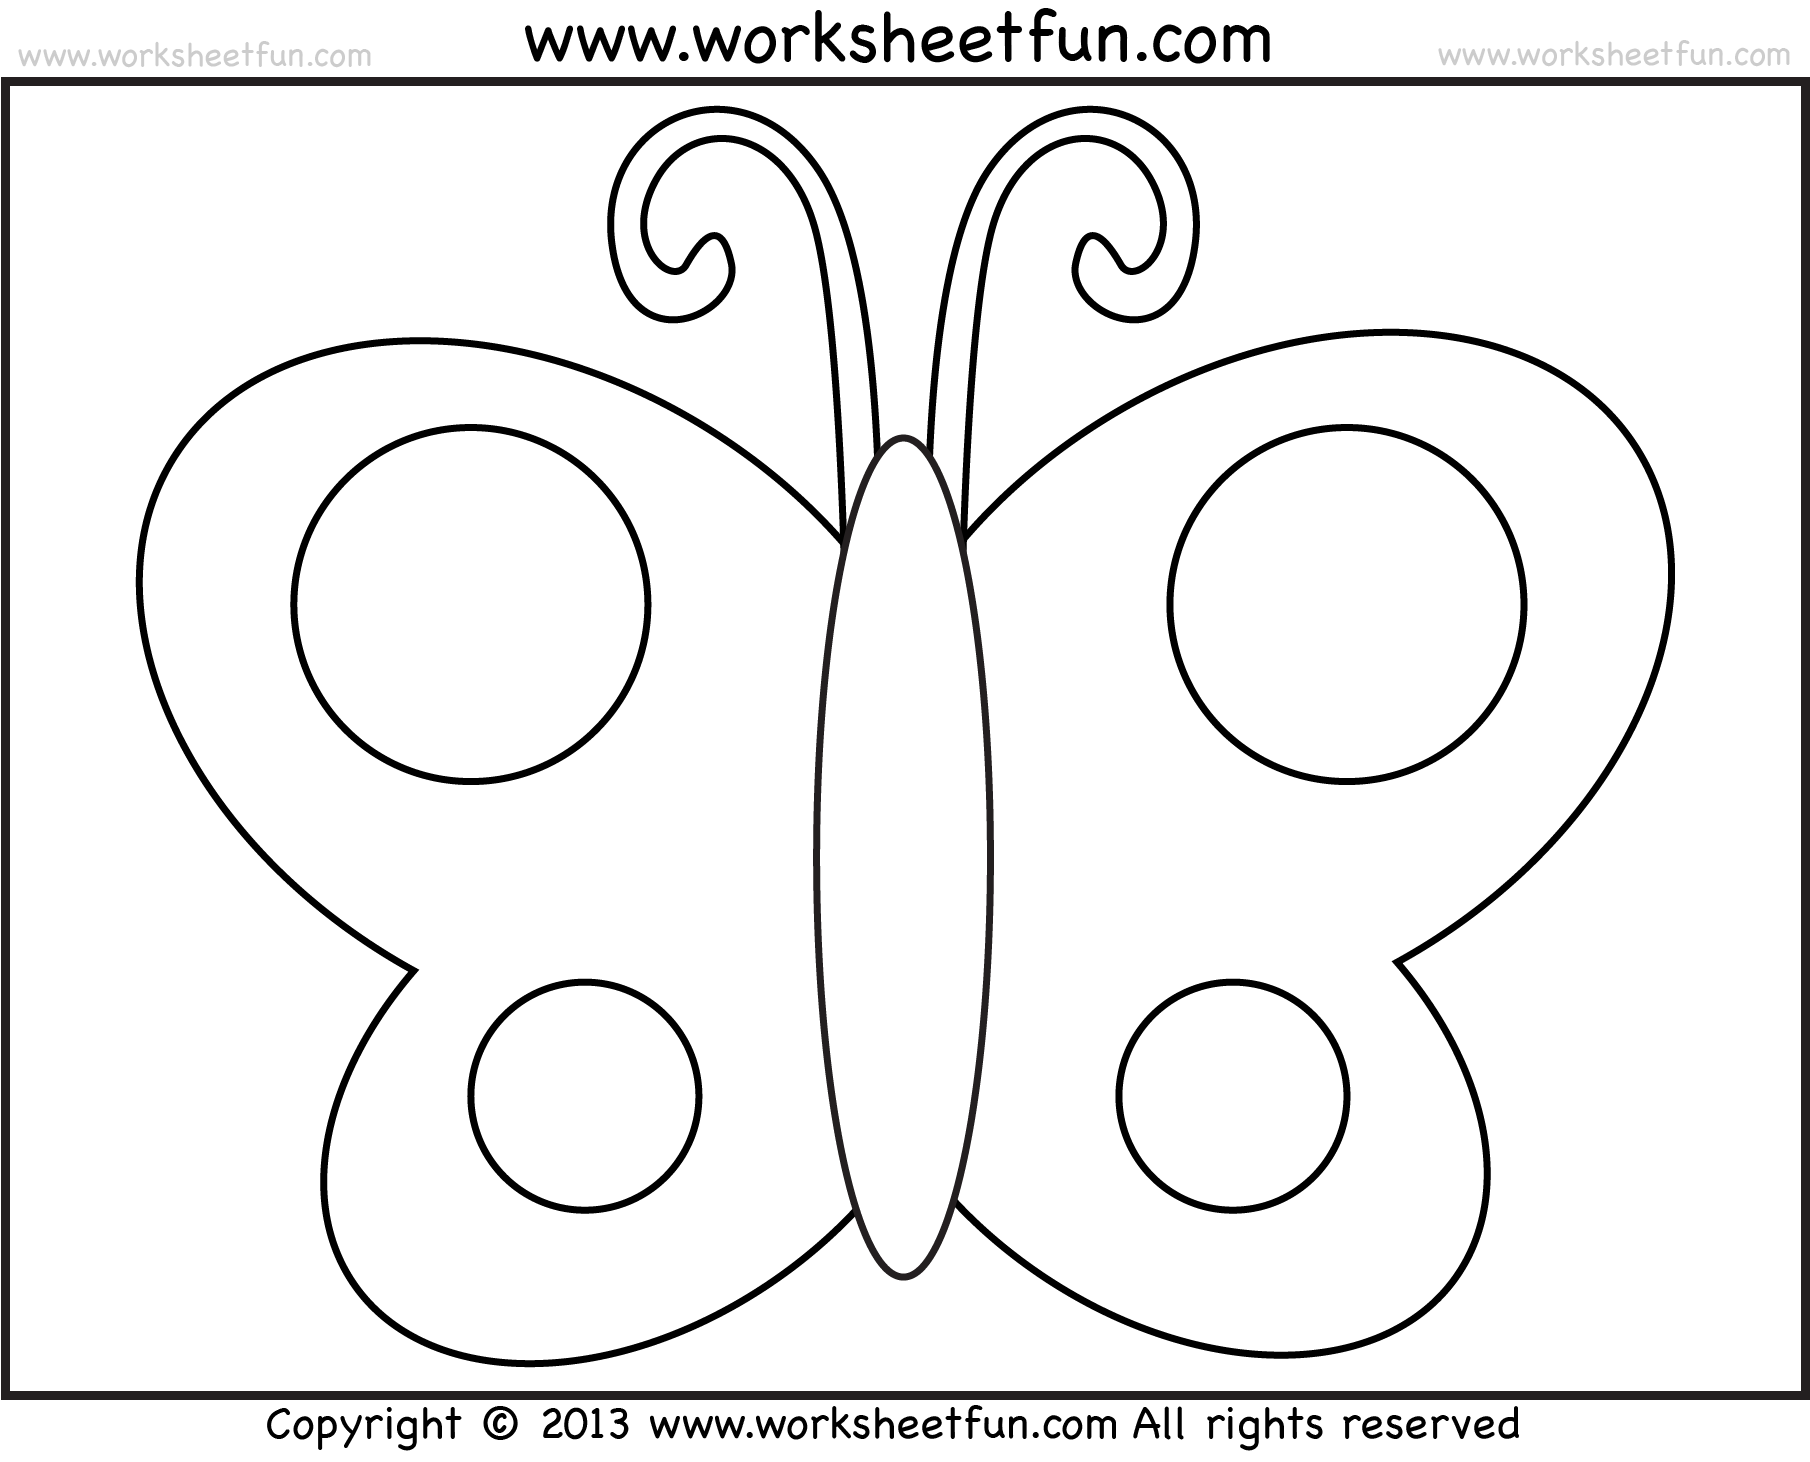 clipart Activities For Kindergarten Drawing at GetDrawings